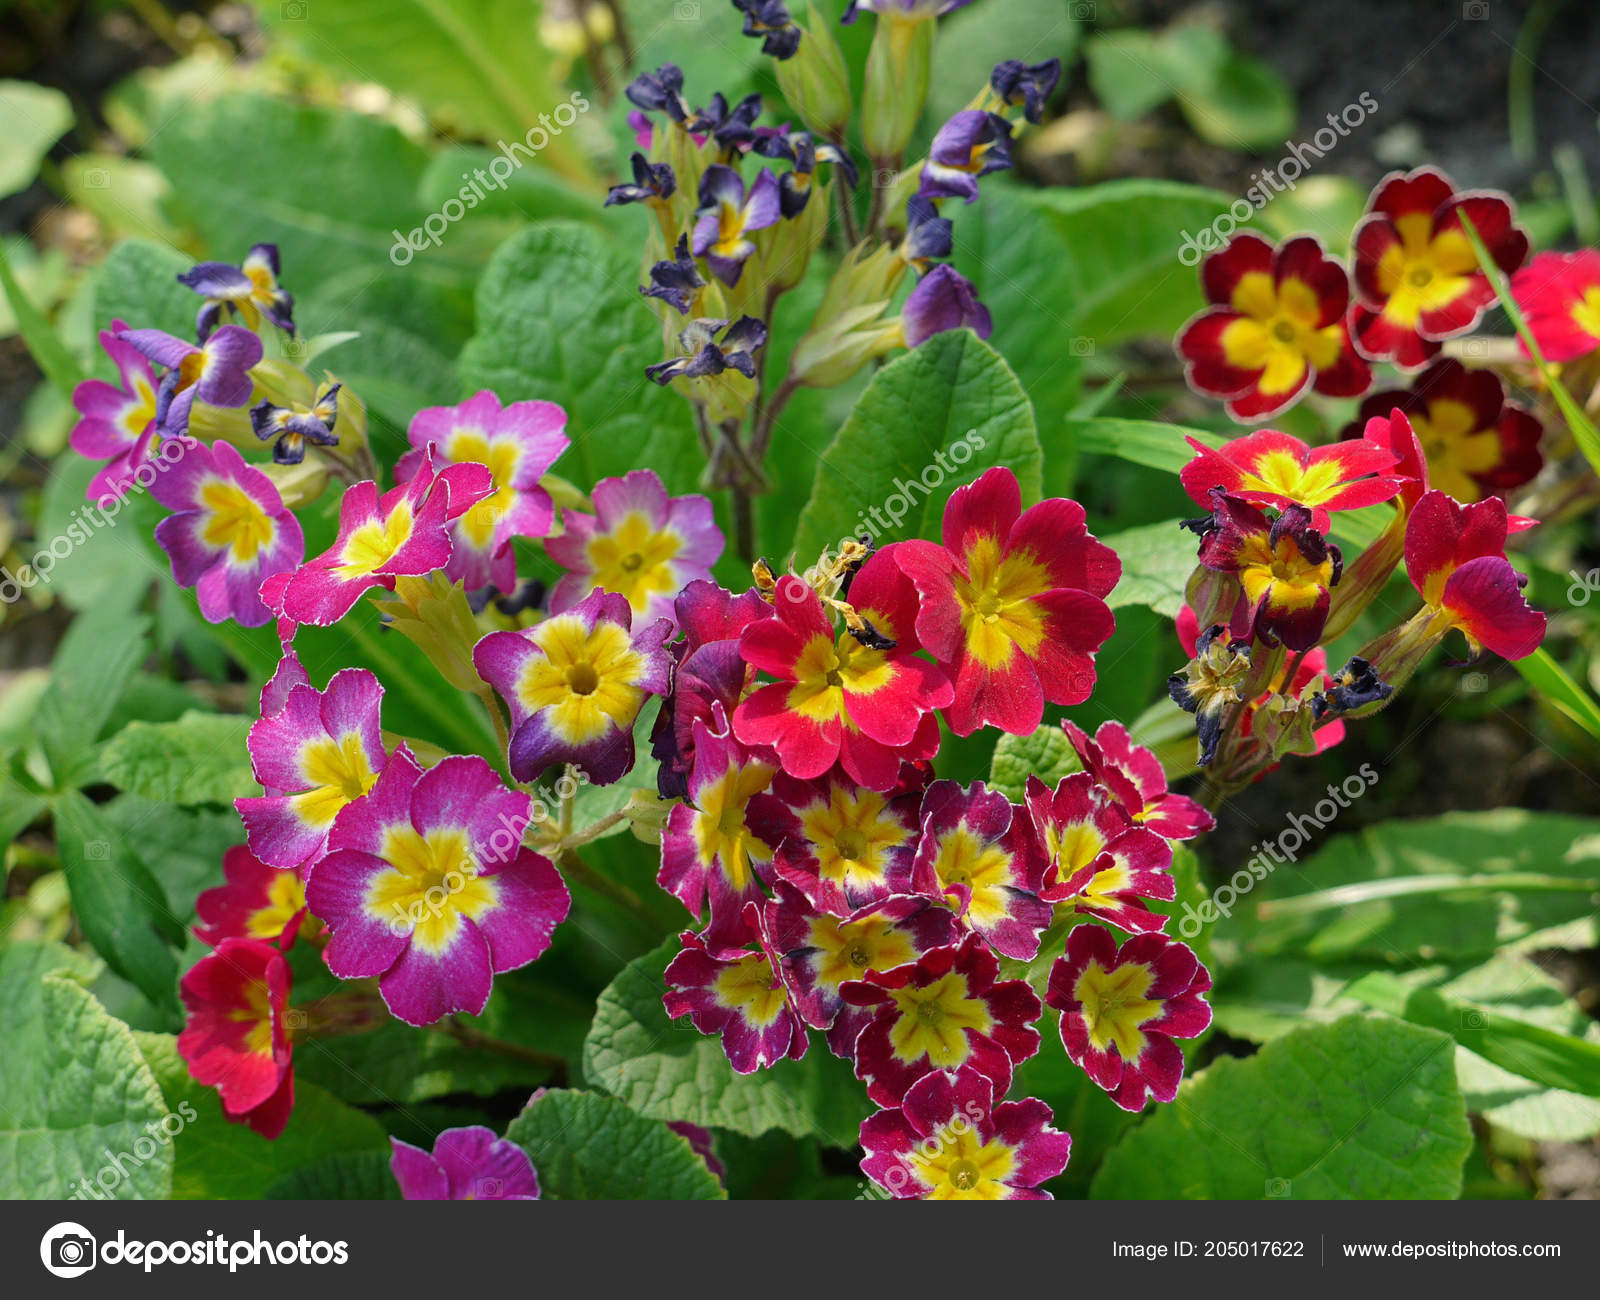 Tender flowers with colorful flowers are very beautiful and bright ...